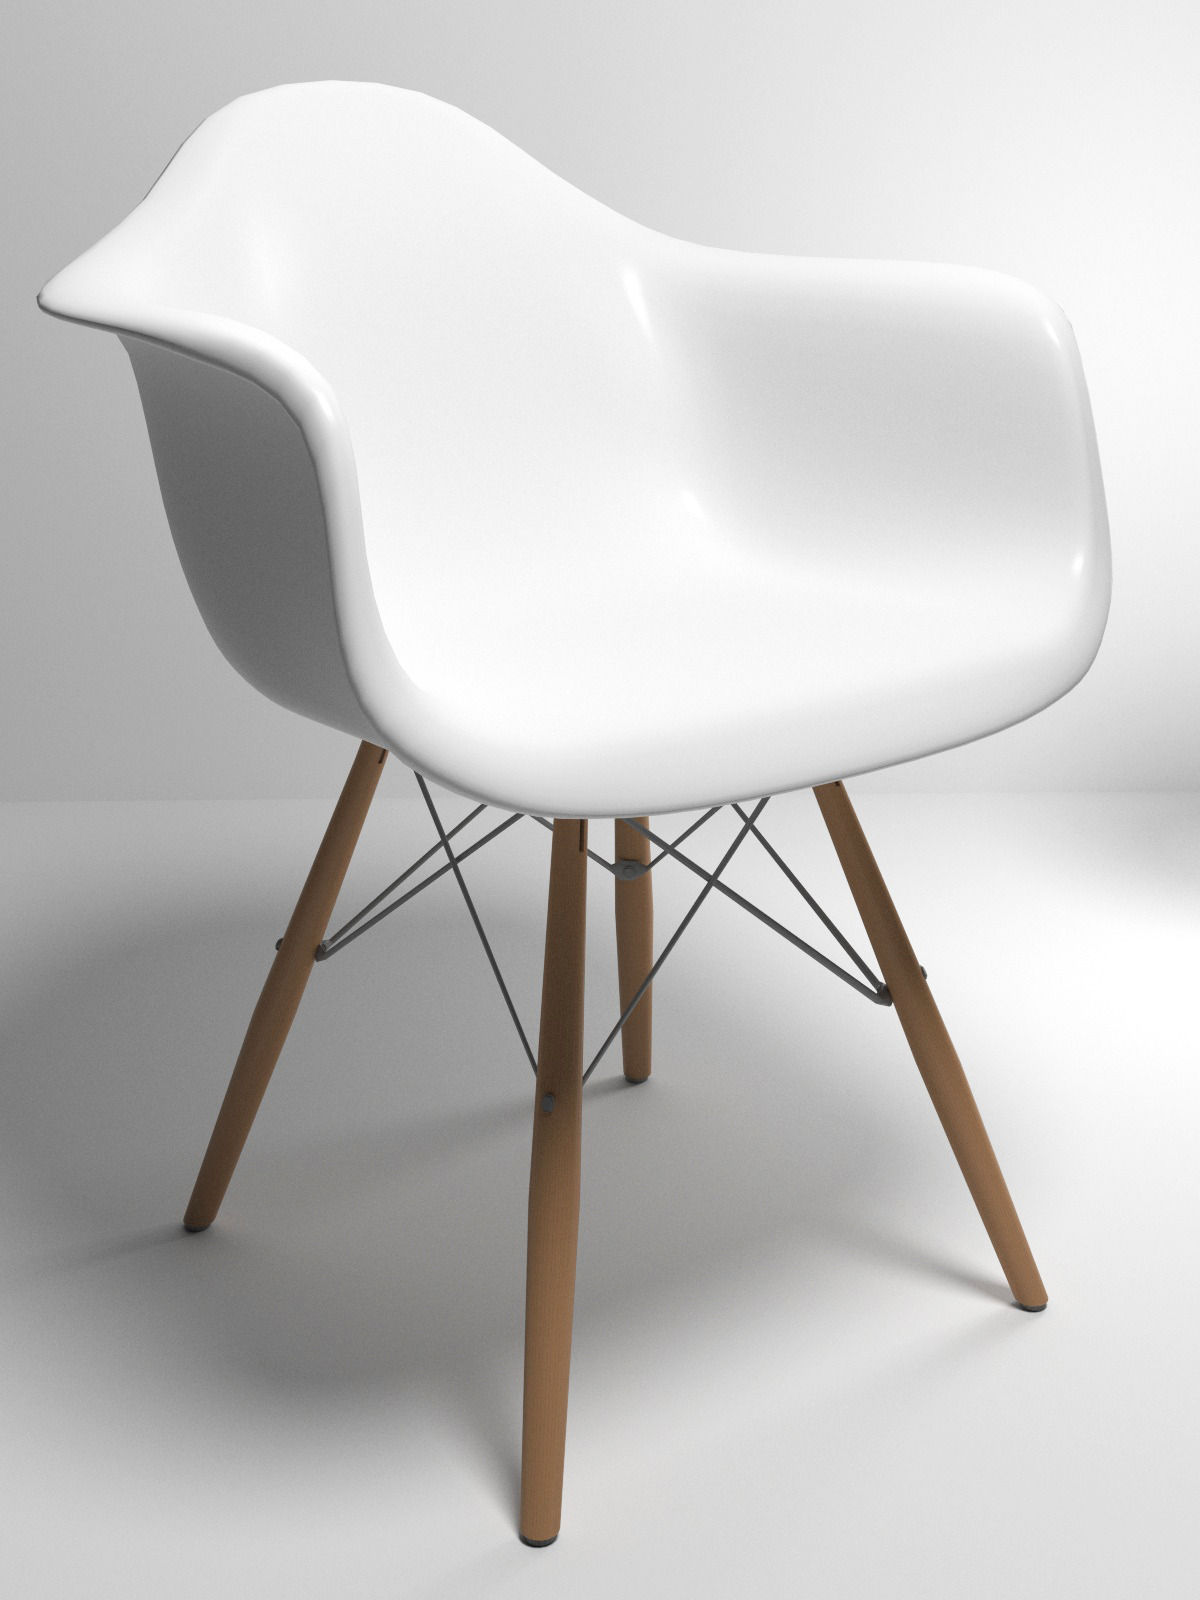 Molded plastic furniture Rotomolded Eames Style Molded Plastic Chair 3d Model Max Obj Mtl 3ds Fbx Stl Cgtrader 3d Eames Style Molded Plastic Chair Cgtrader